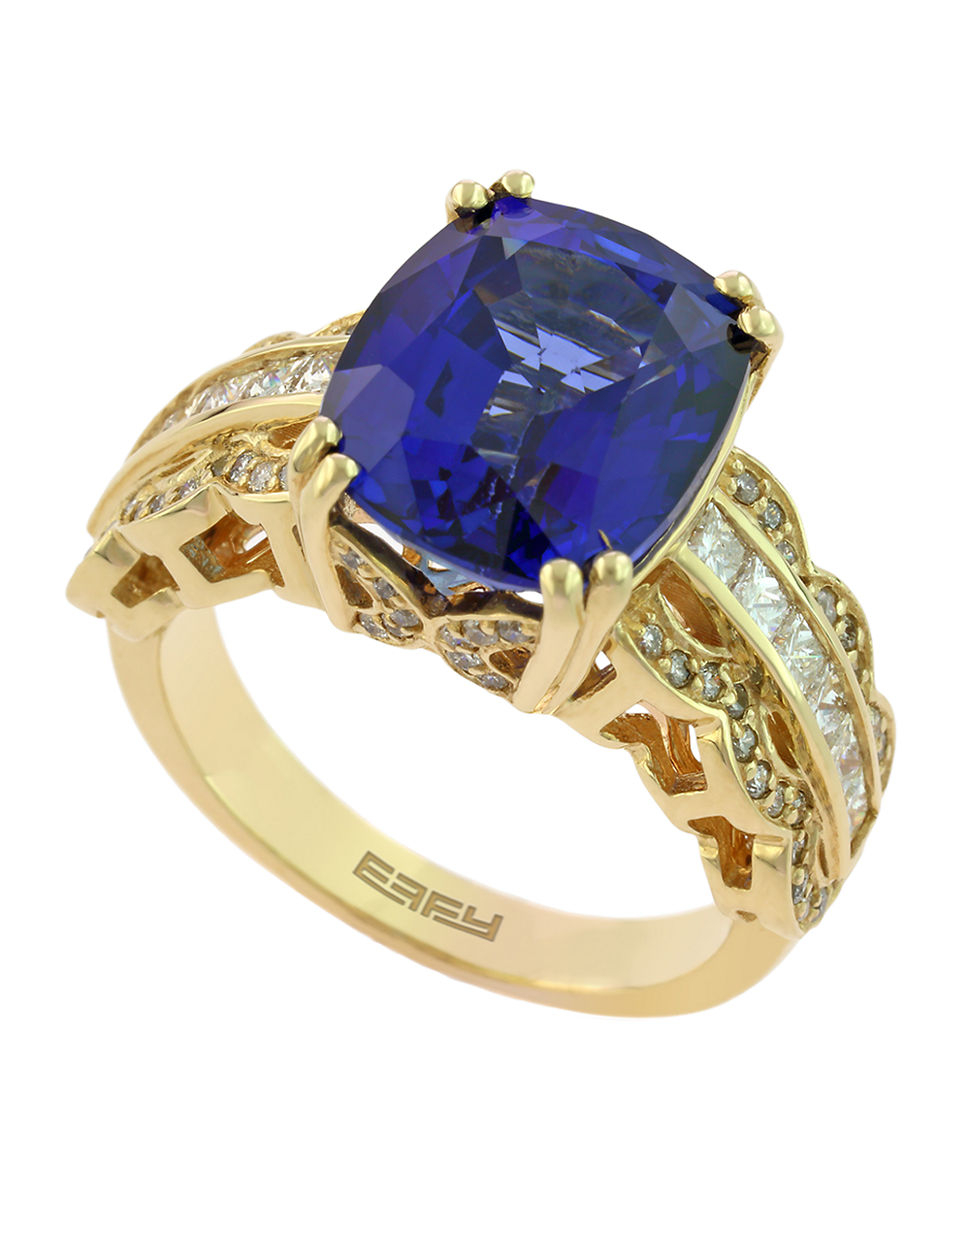 three diffused and in business b enhancements zoning gemstone treatments jewelry image sapphire part